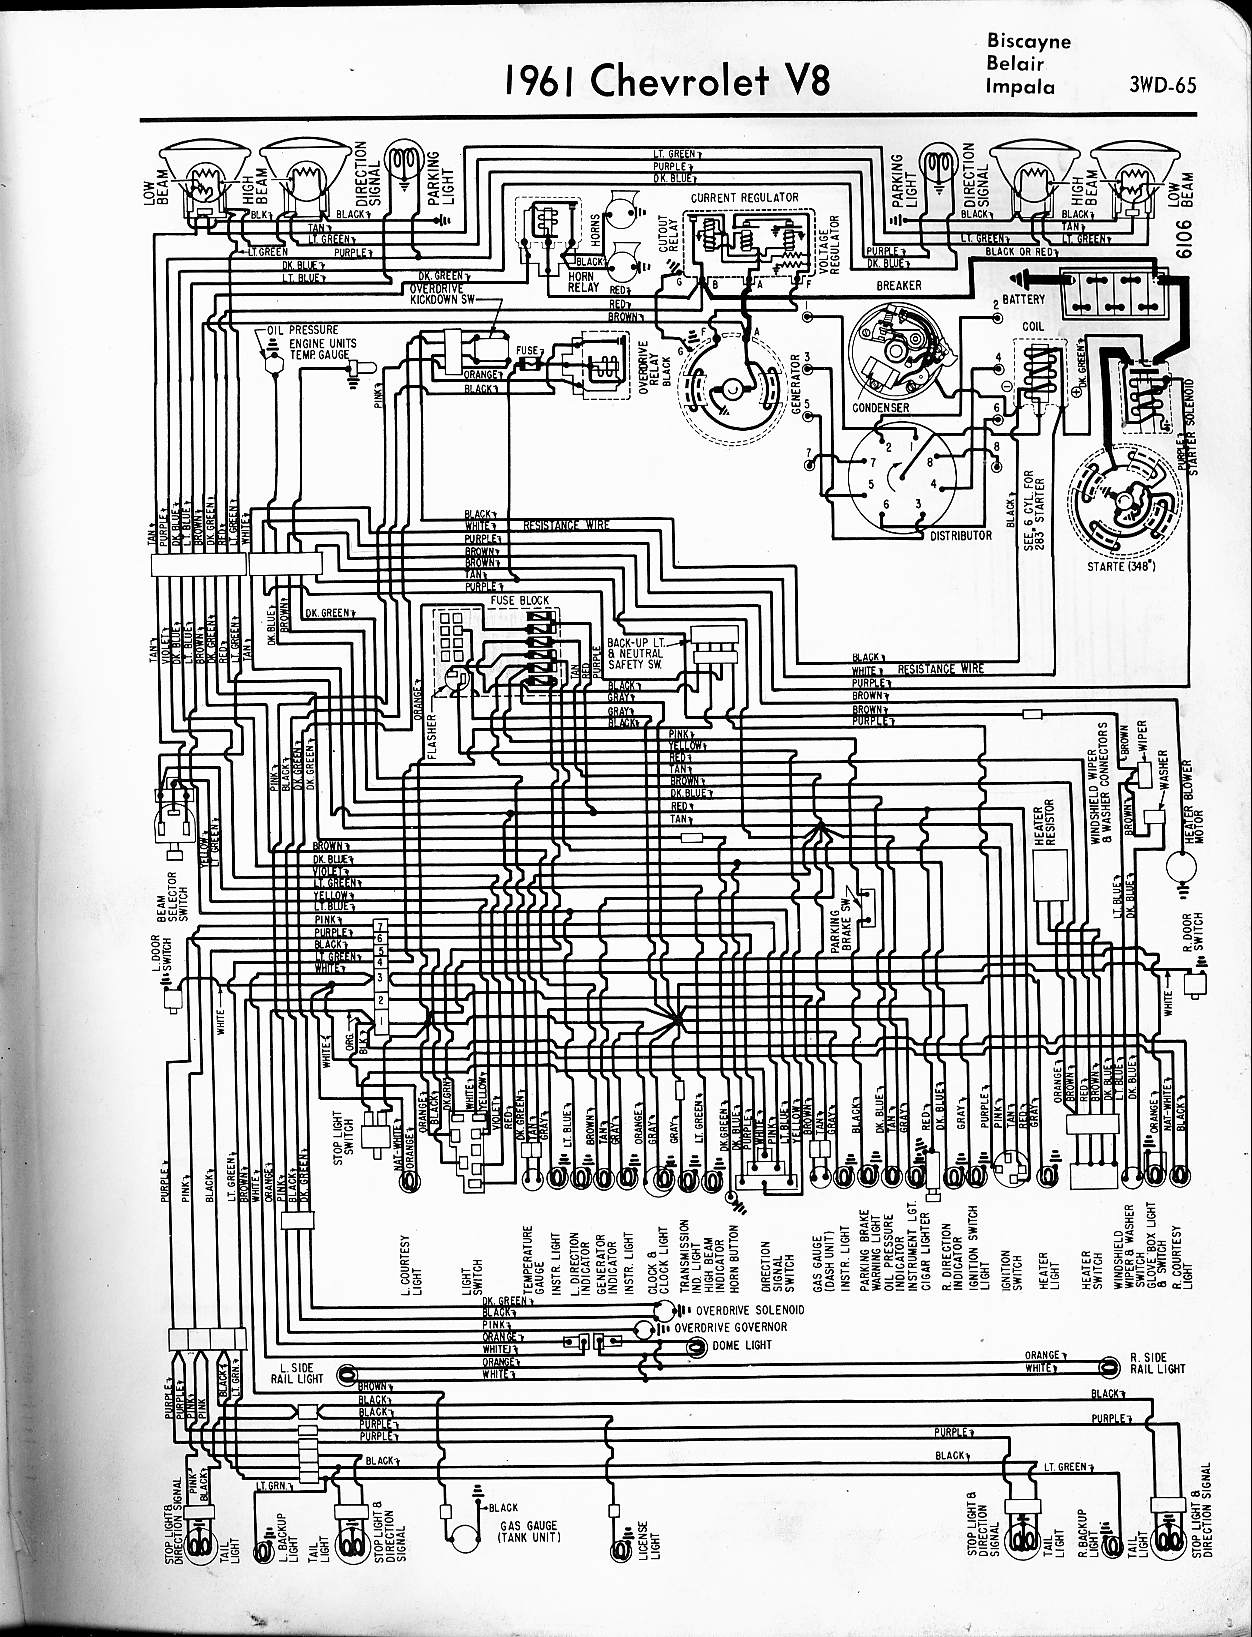 Wiring Diagram For Chevy V8 Engine Start Building A 2001 Gmc 6 0 57 65 Diagrams Rh Oldcarmanualproject Com 31 Liter Gm